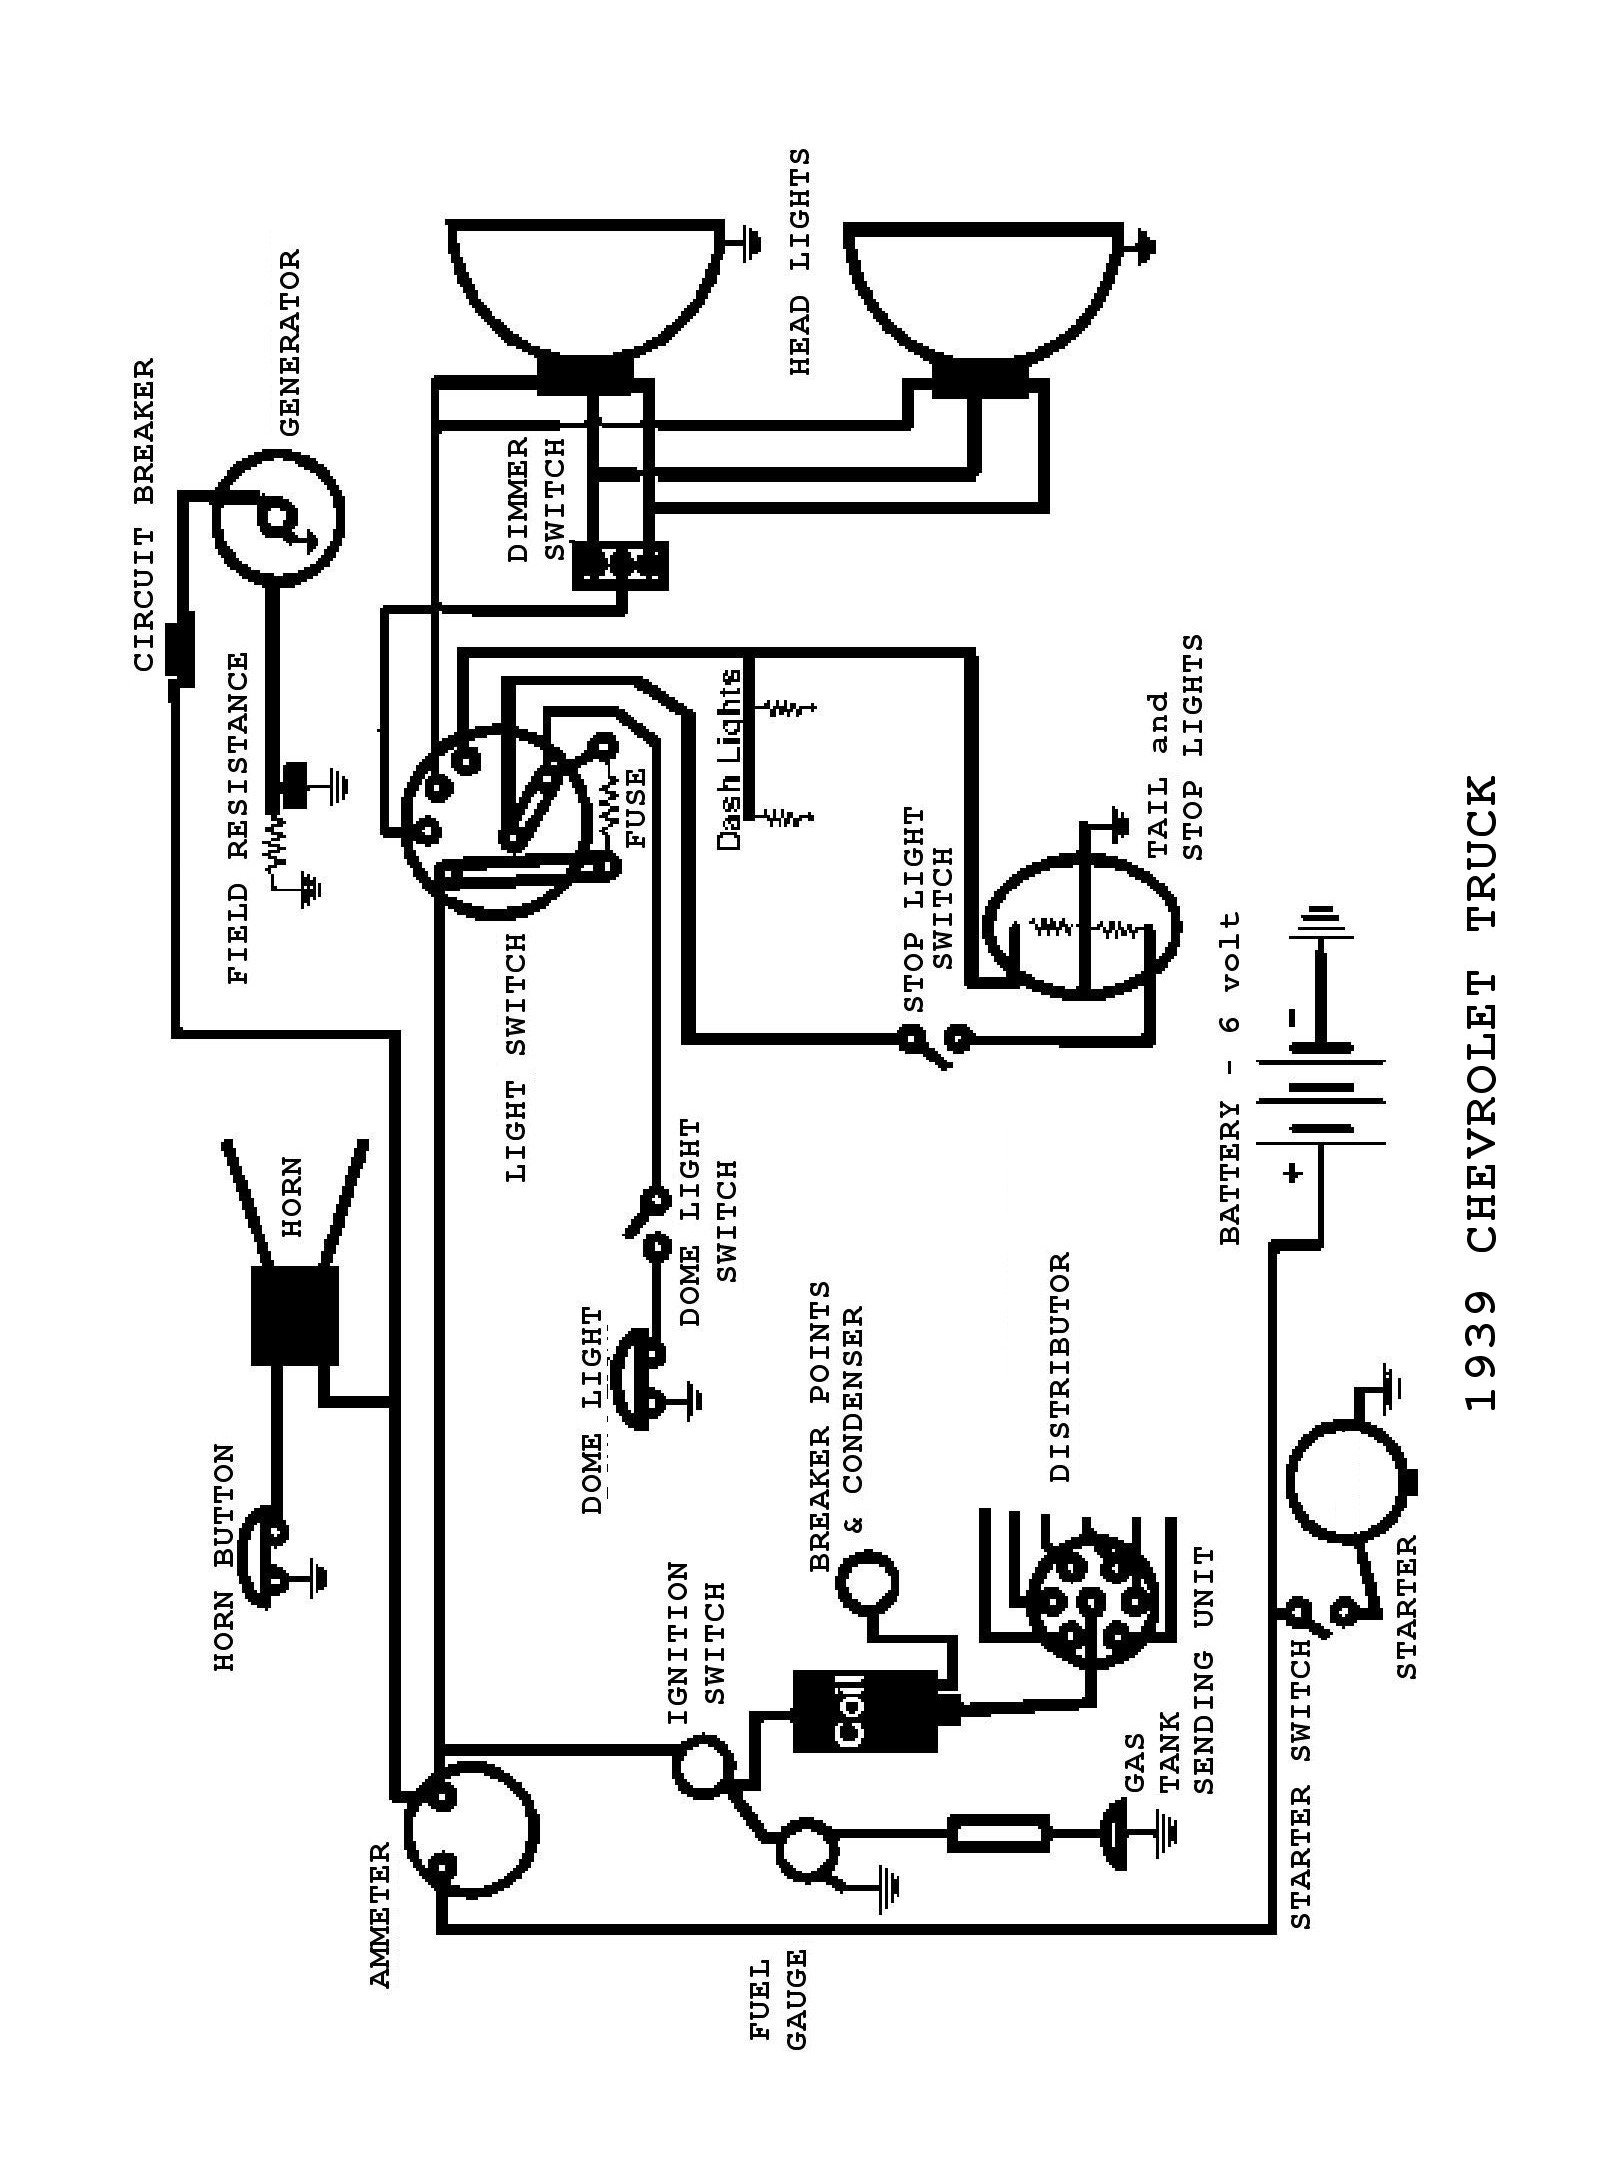 Willys Jeep Wiring Diagrams Surrey Cj2a Diagram Gooddy Org 1955 together with Documents further 1948 Chevy Front Brake Diagram further 221450506657449789 additionally 1950 Hudson Wiring Diagram. on 1951 chevy truck wiring diagram